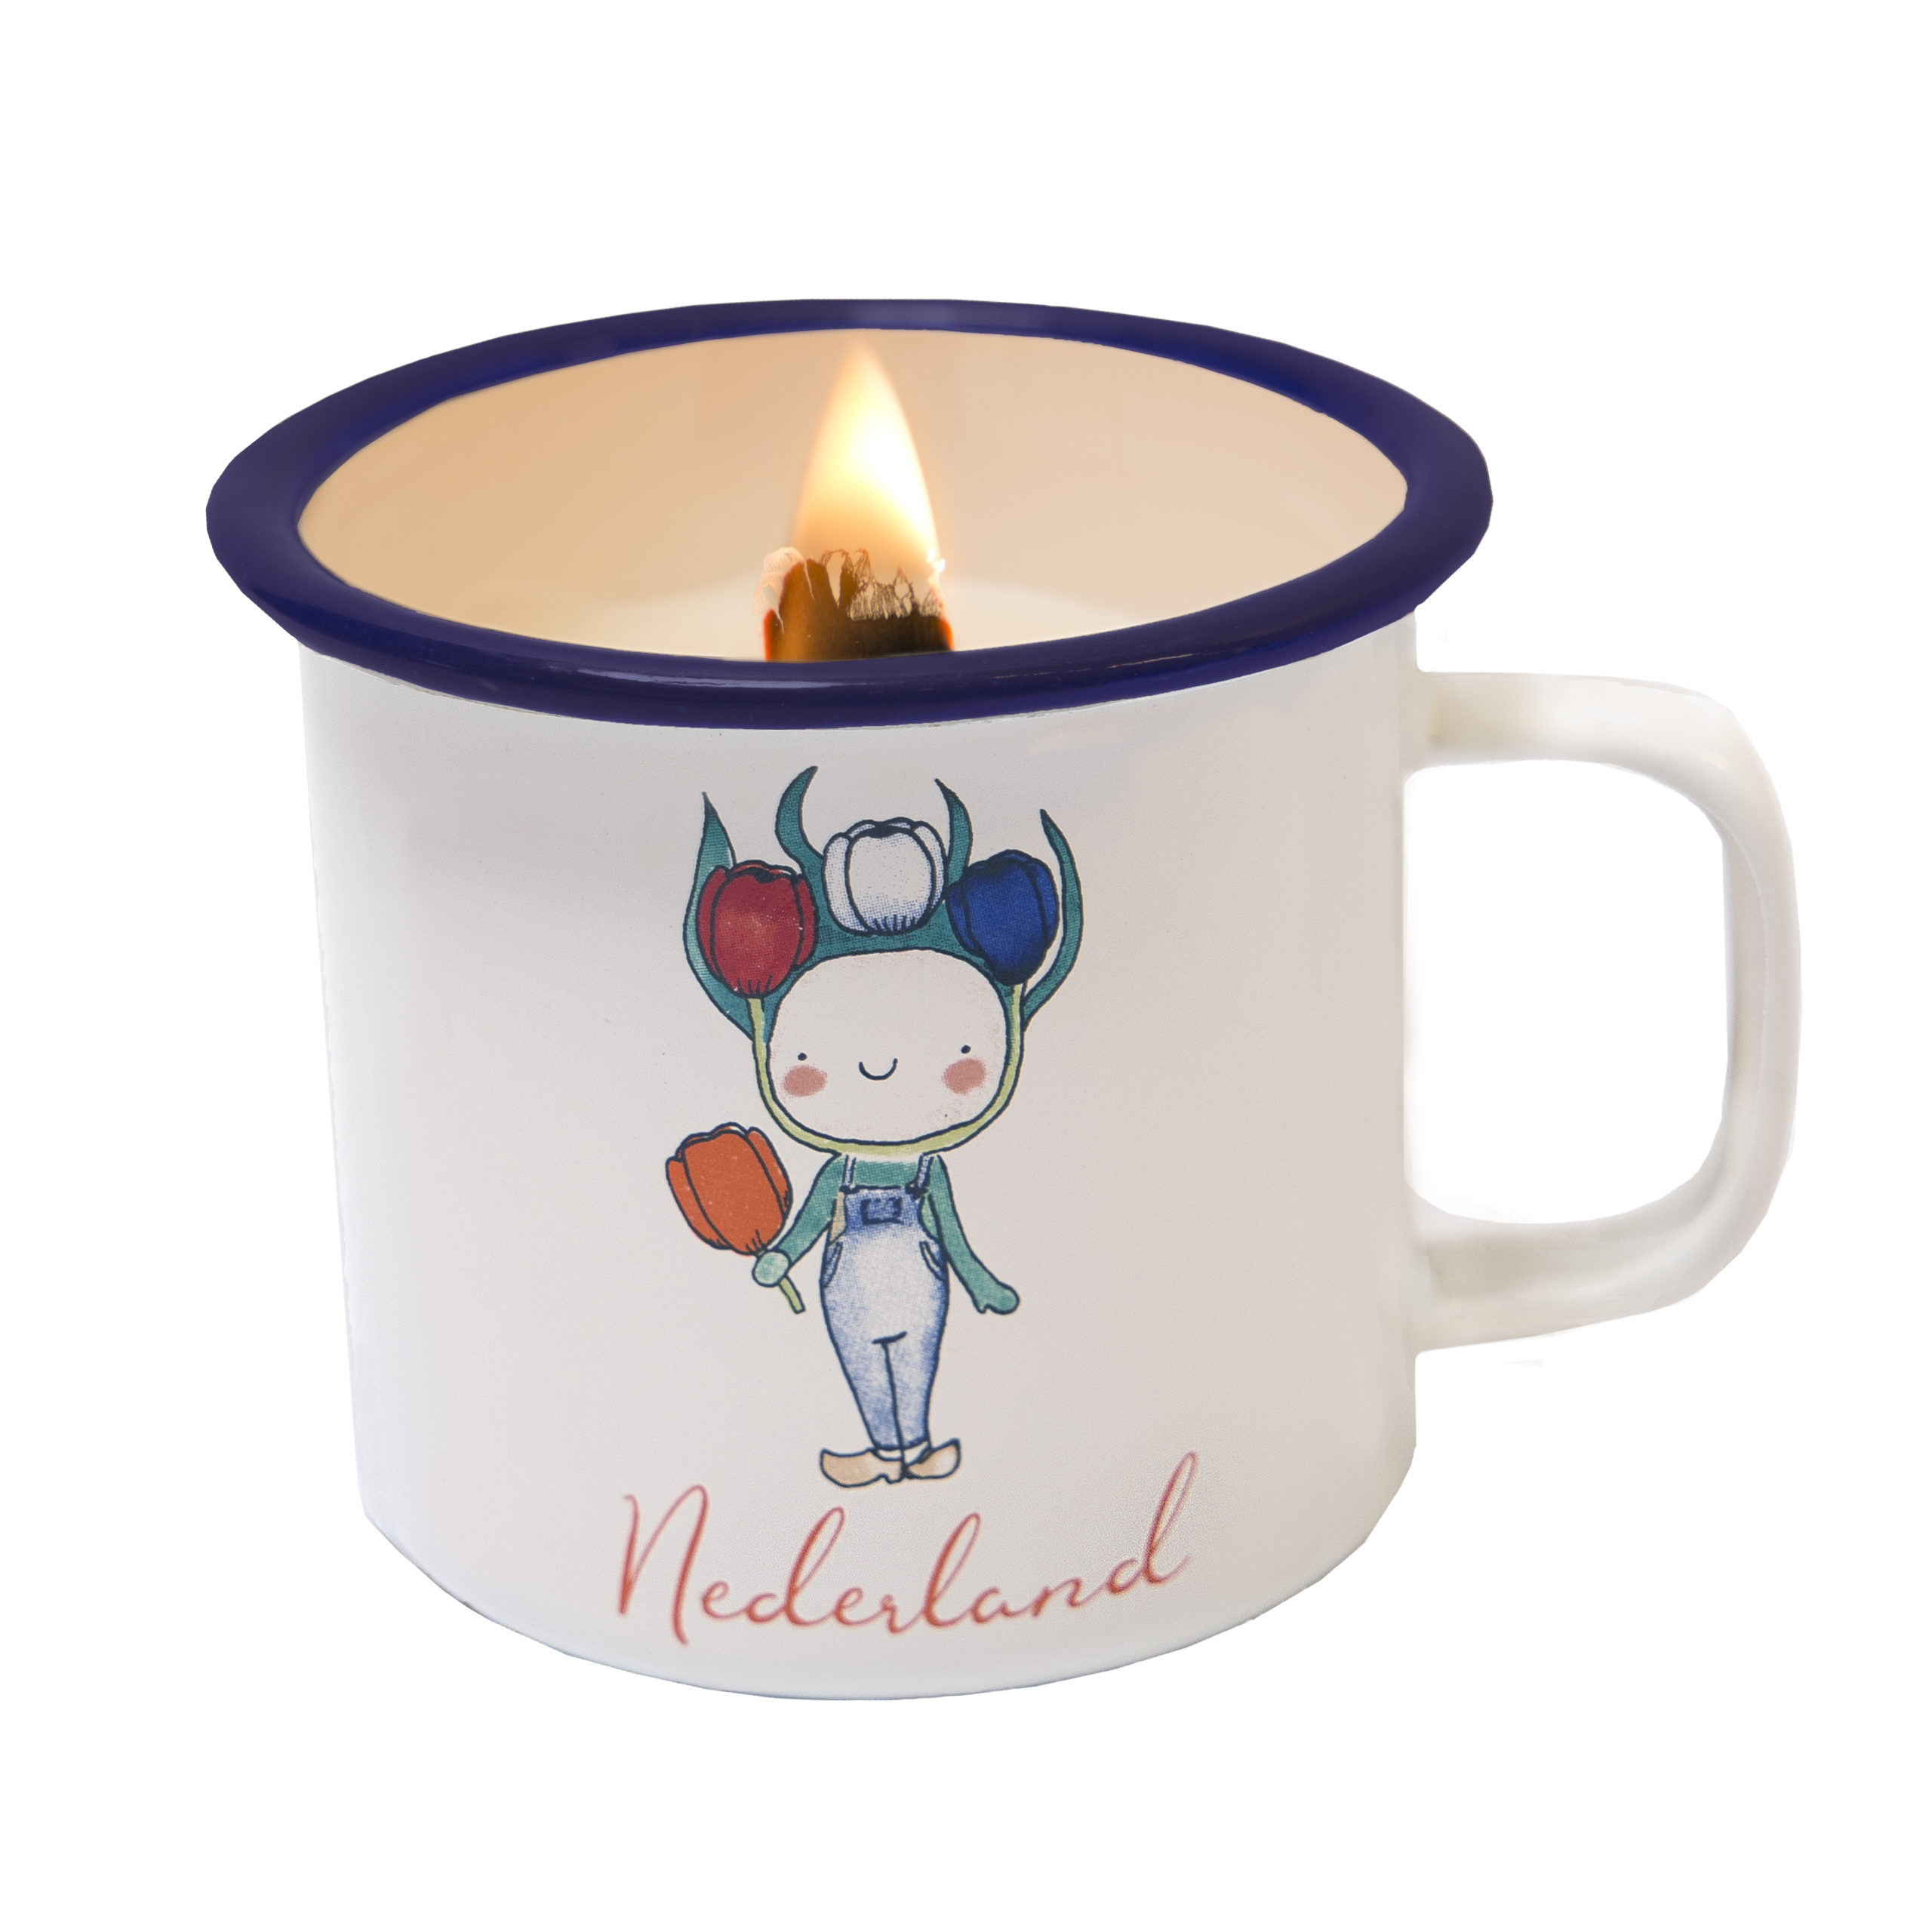 cANDLE IN A CUP HAPPY TULIP TULIPBOY NEDERLAND